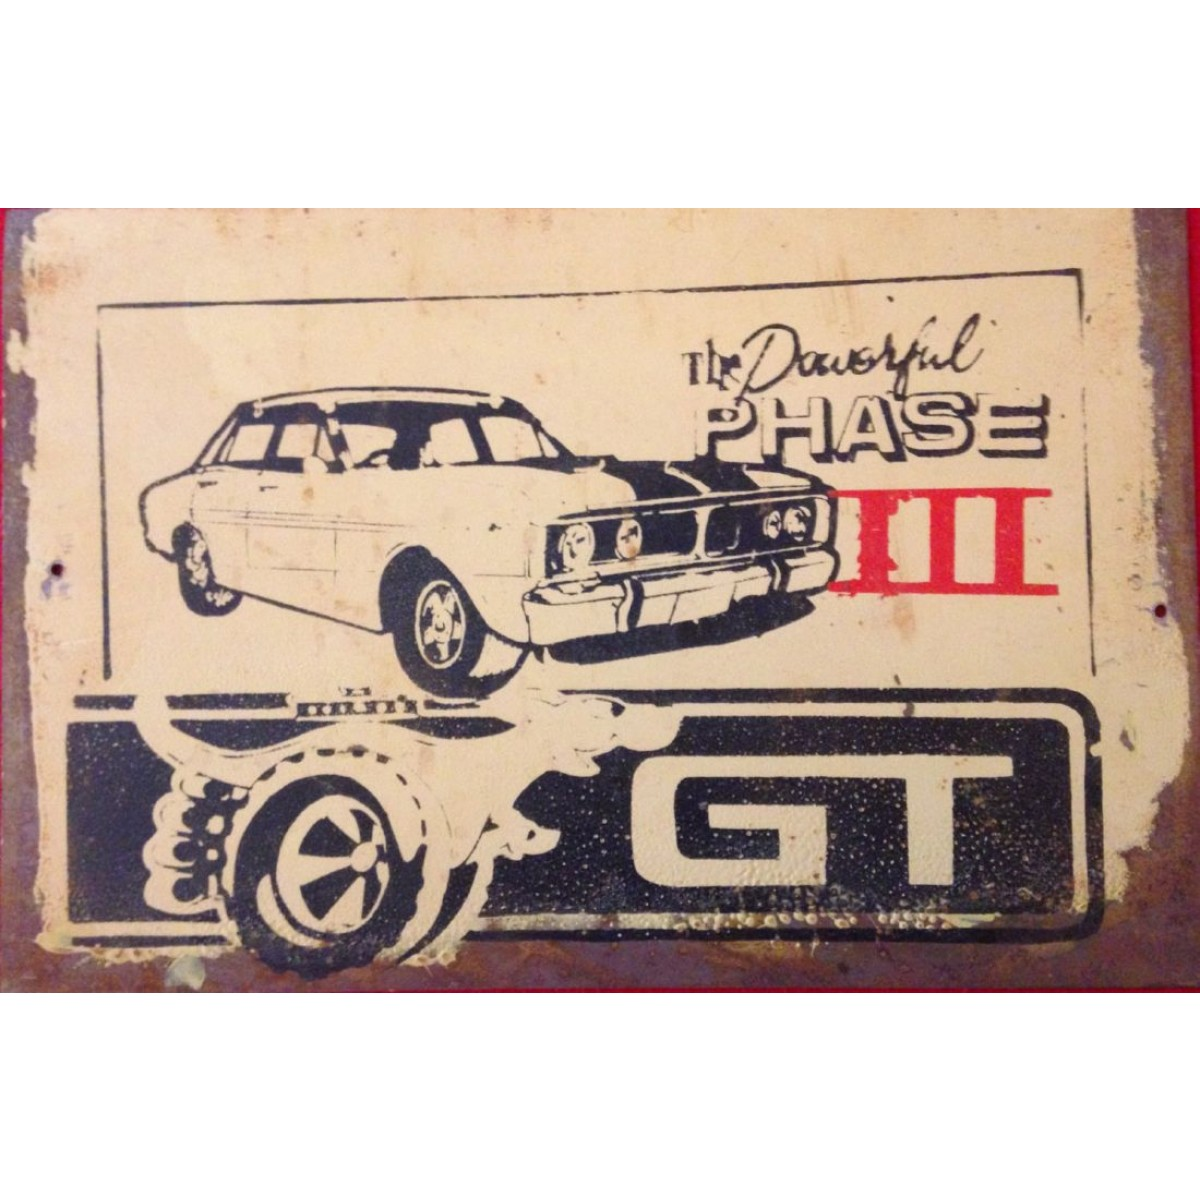 THE POWERFUL PHASE III GT Ford Tin Signs Man